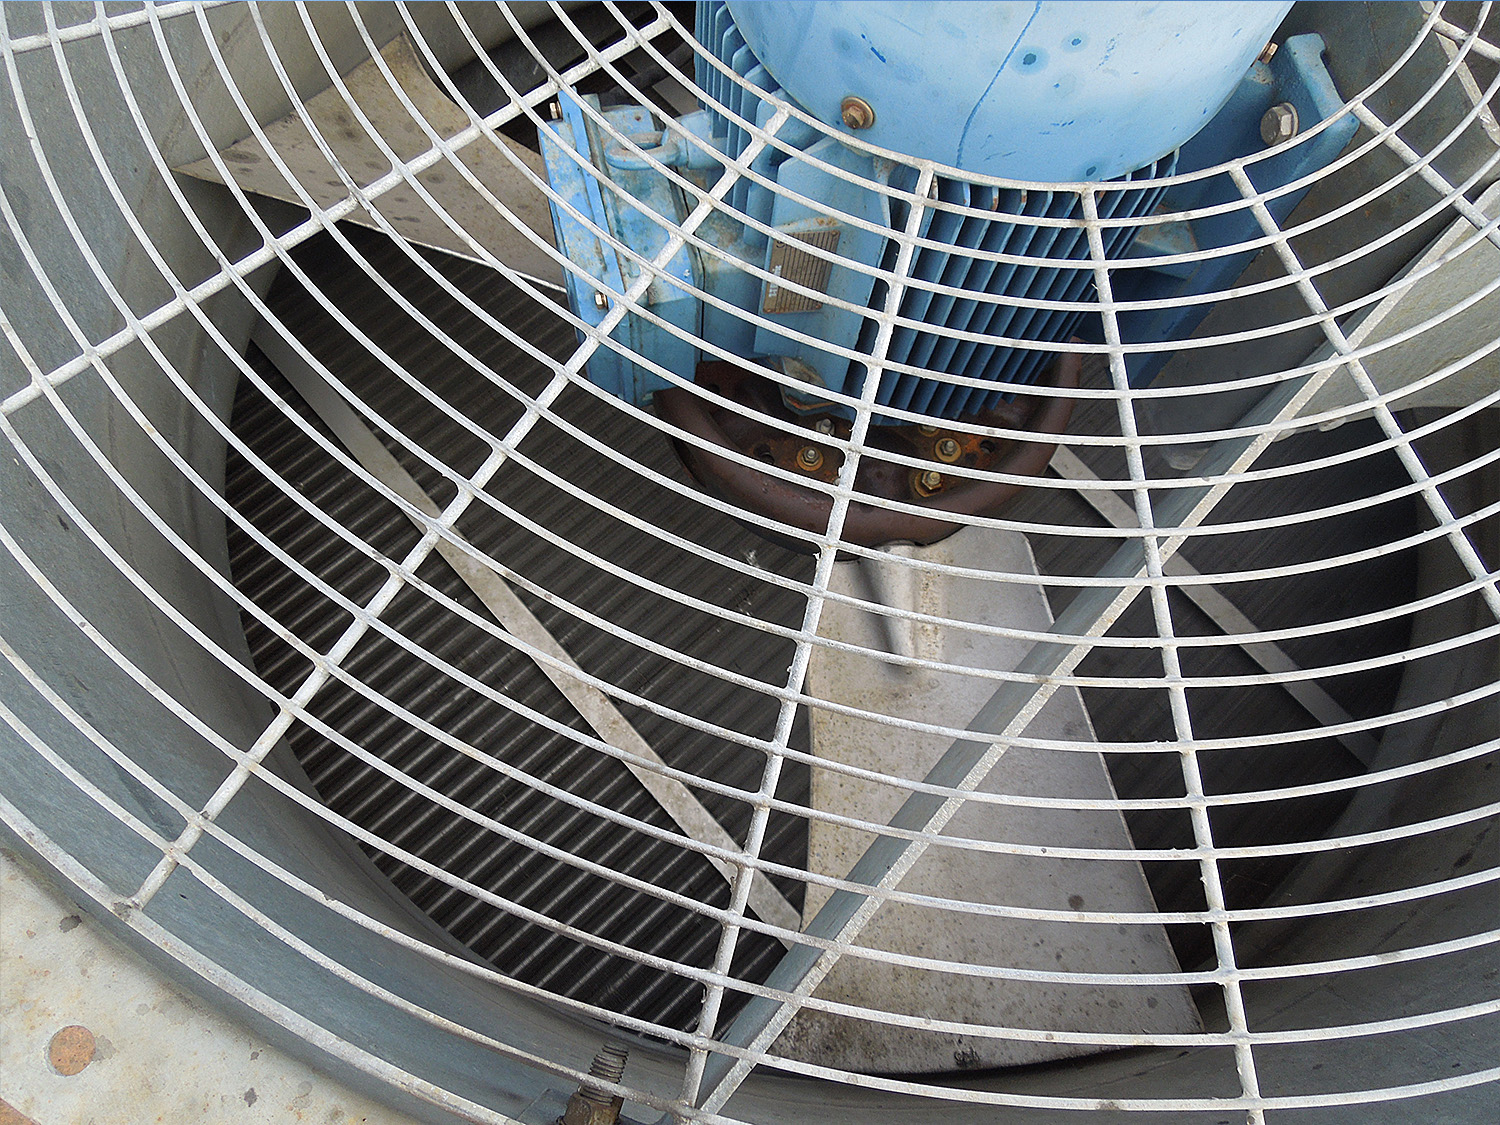 Solve cooling problems from corrosion and contamination at fanSolve cooling problems from corrosion and contamination at fan